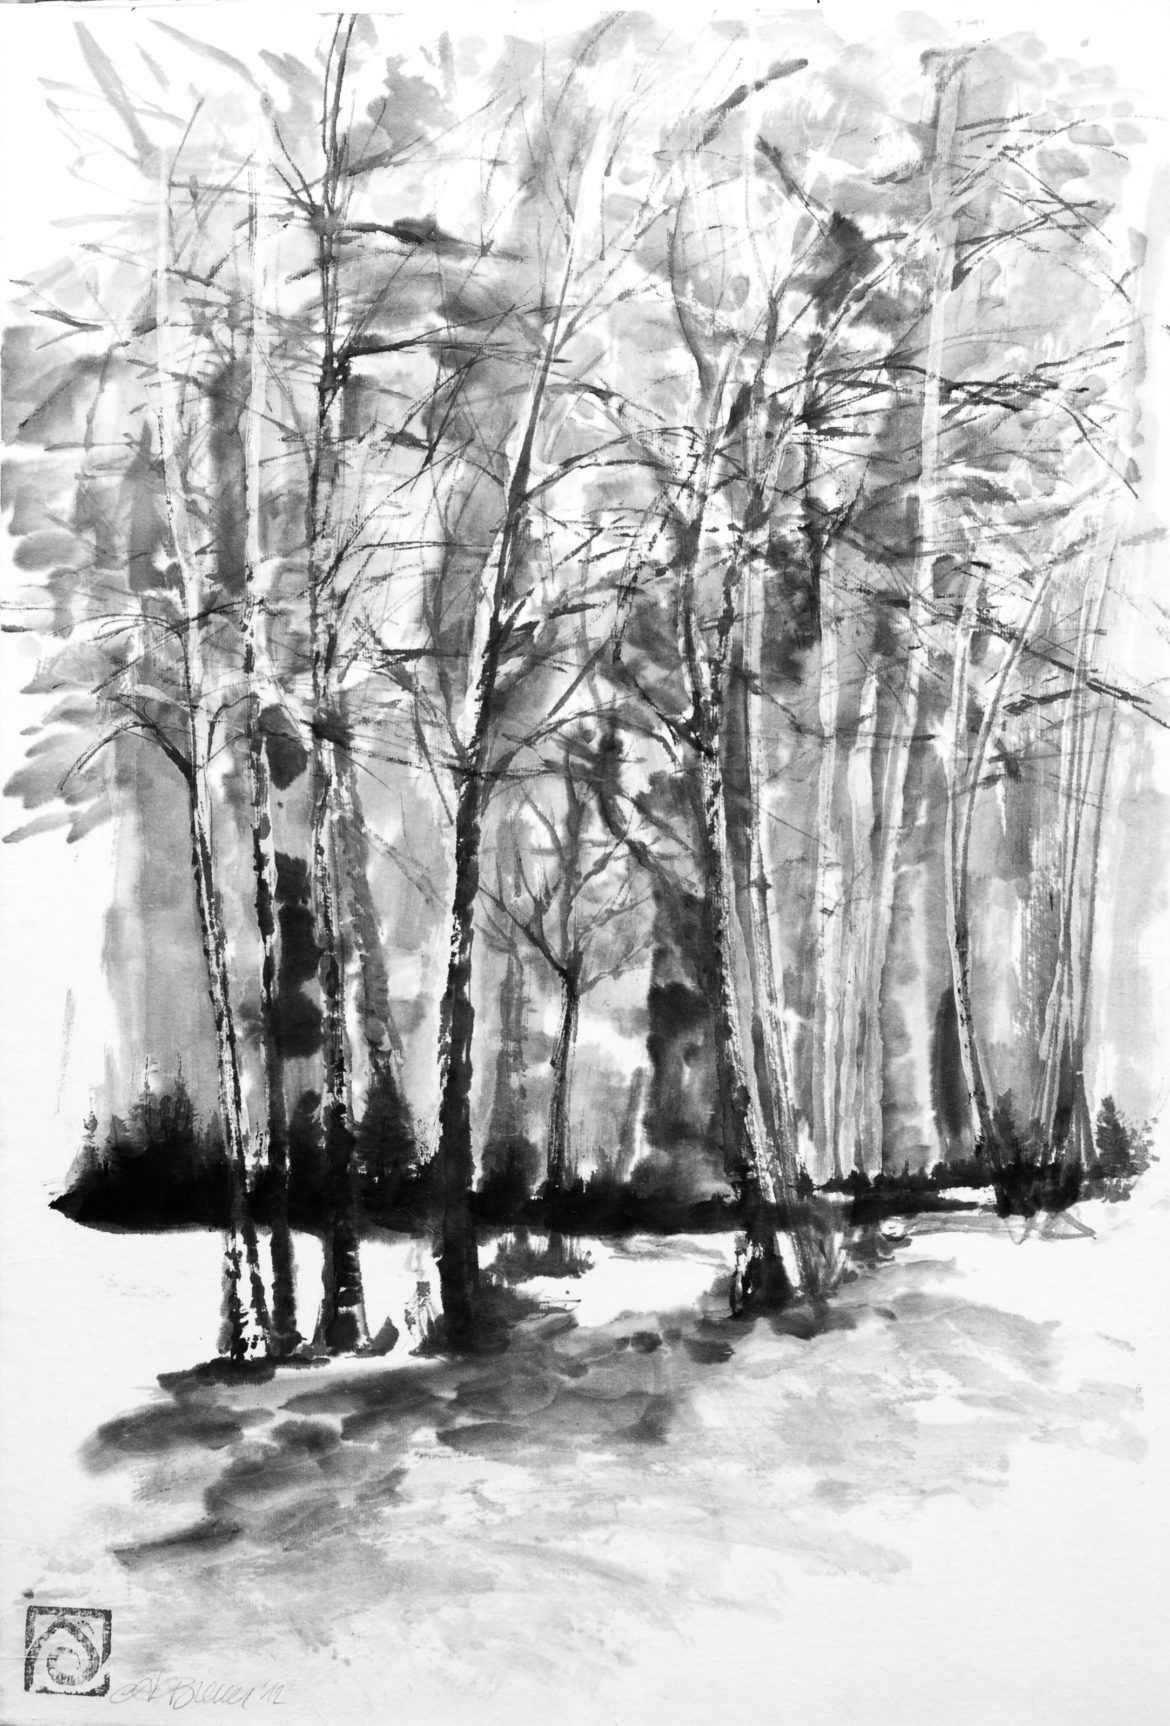 Bosco di betulle china su carta di riso 35x51cm 2012 _72 dpi